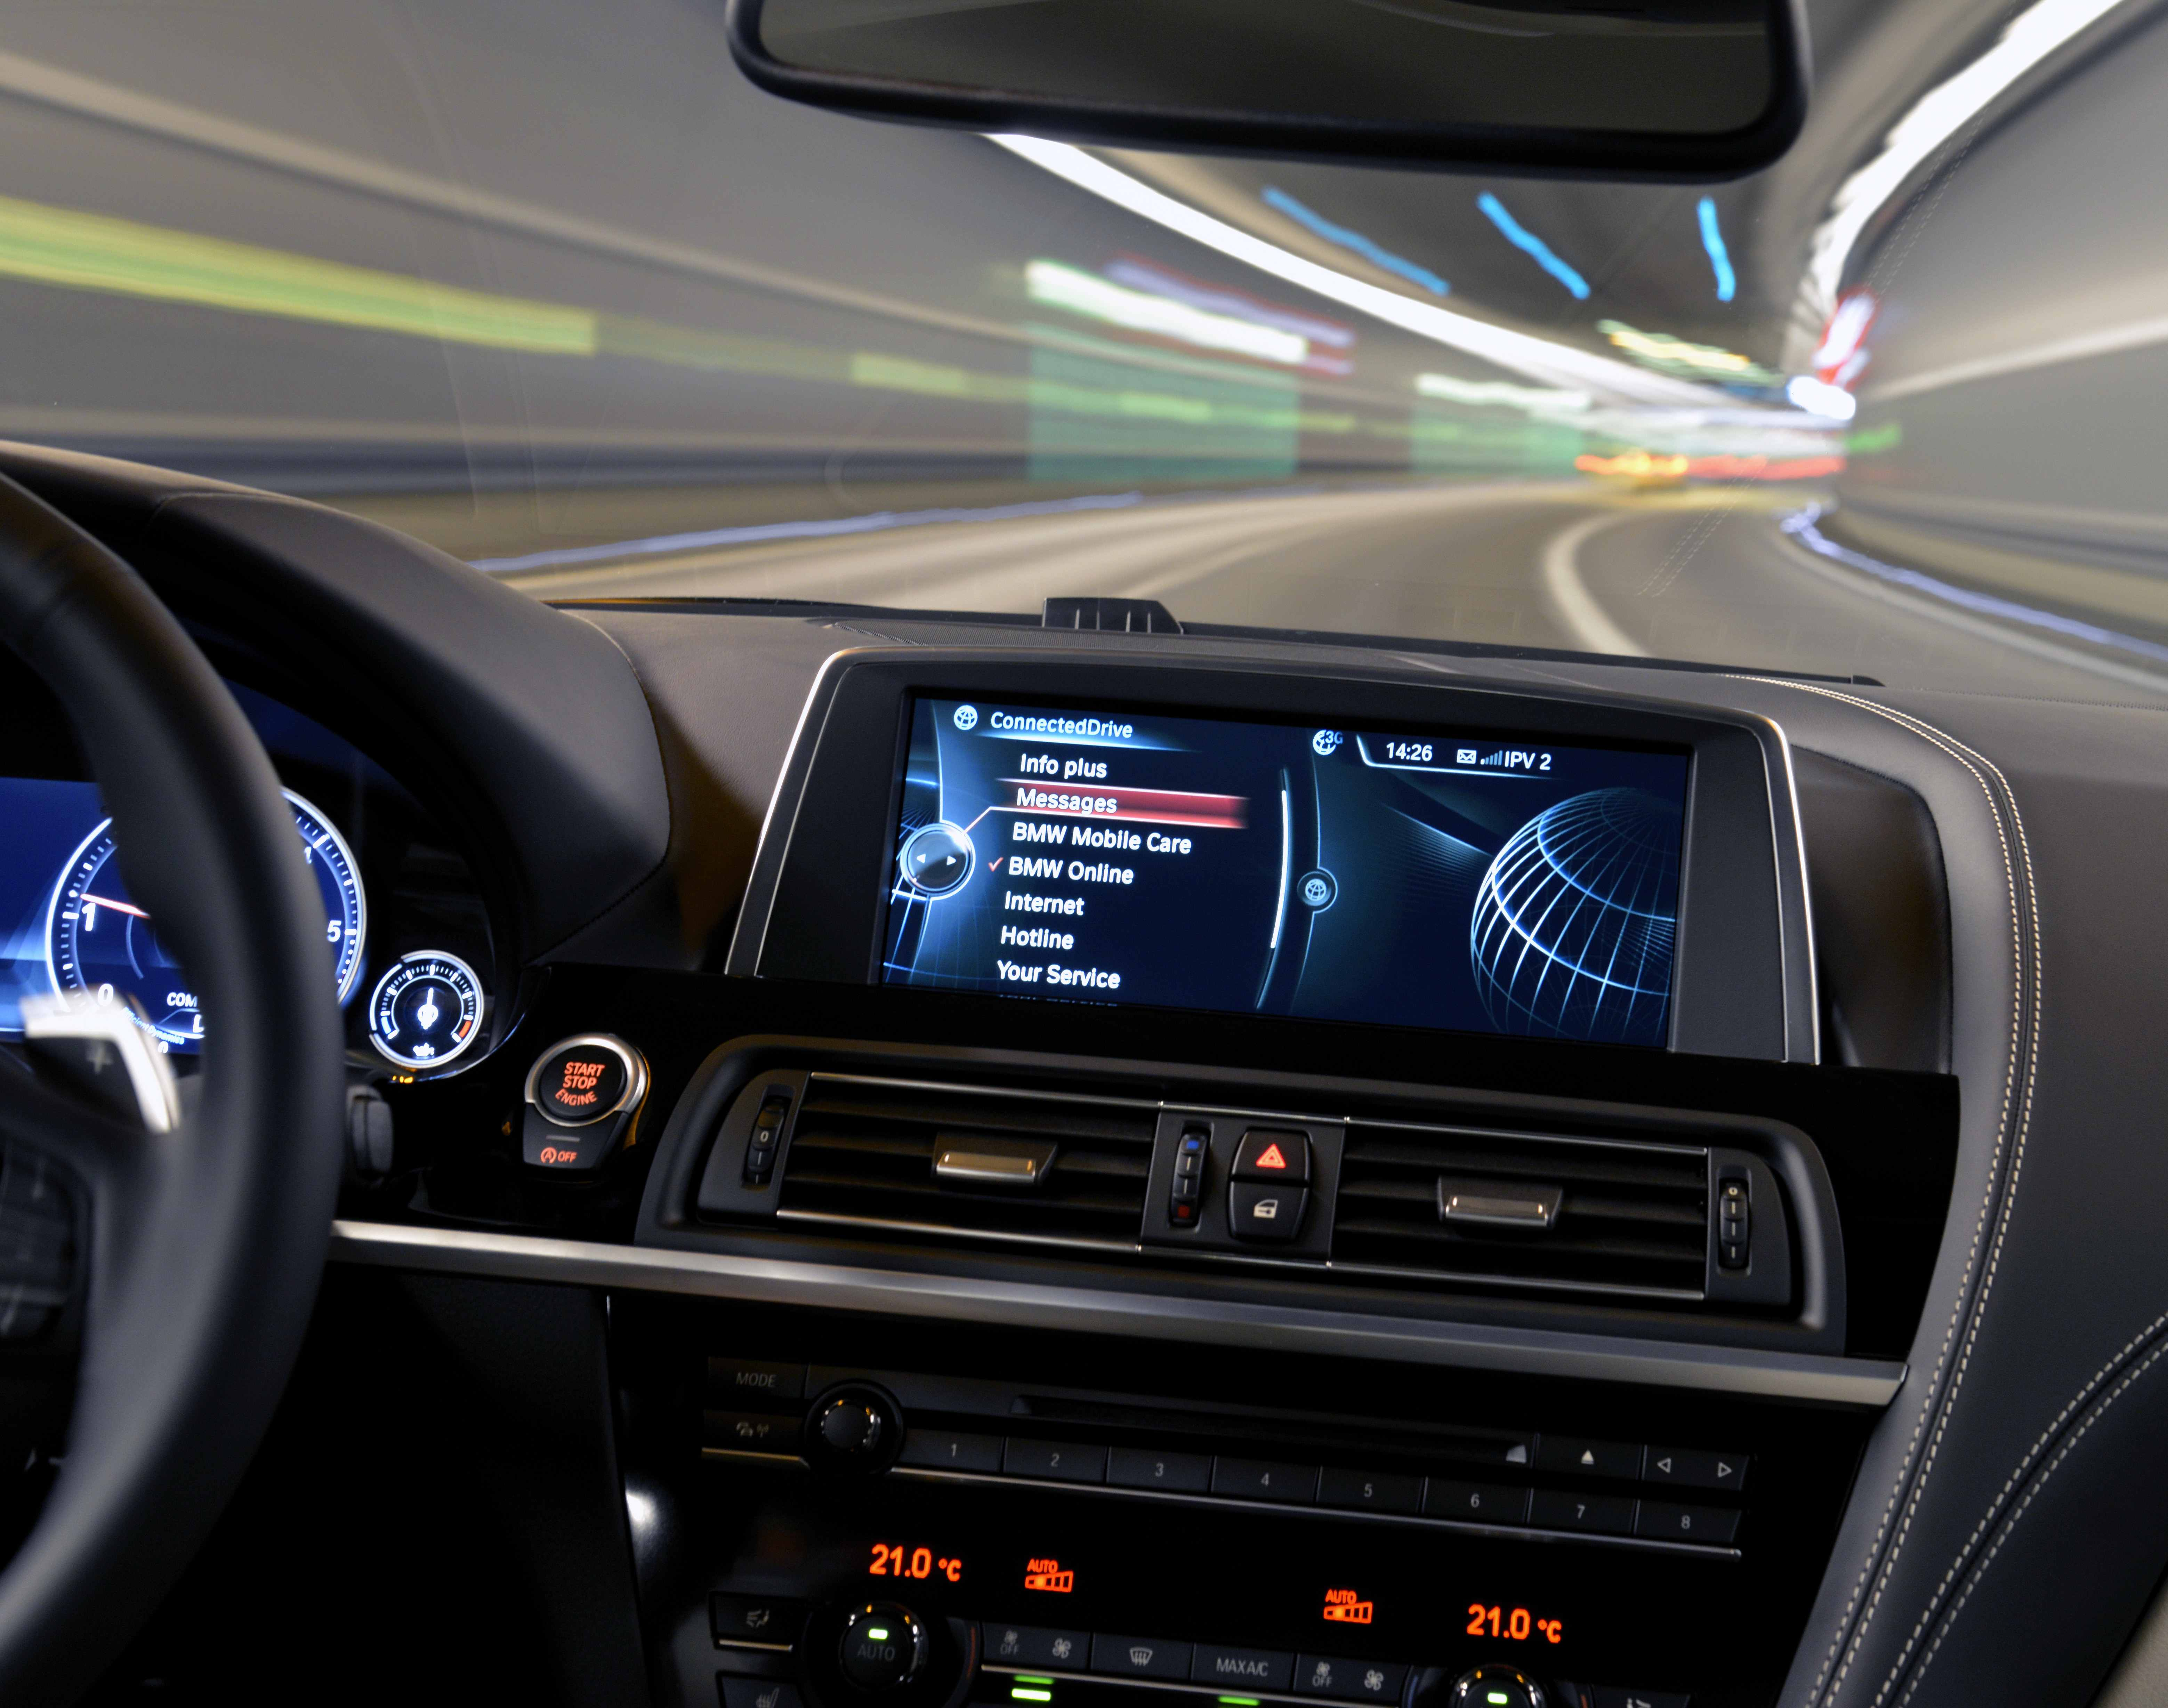 In-Vehicle Apps to Reach 270m by 2018, Predicts Report